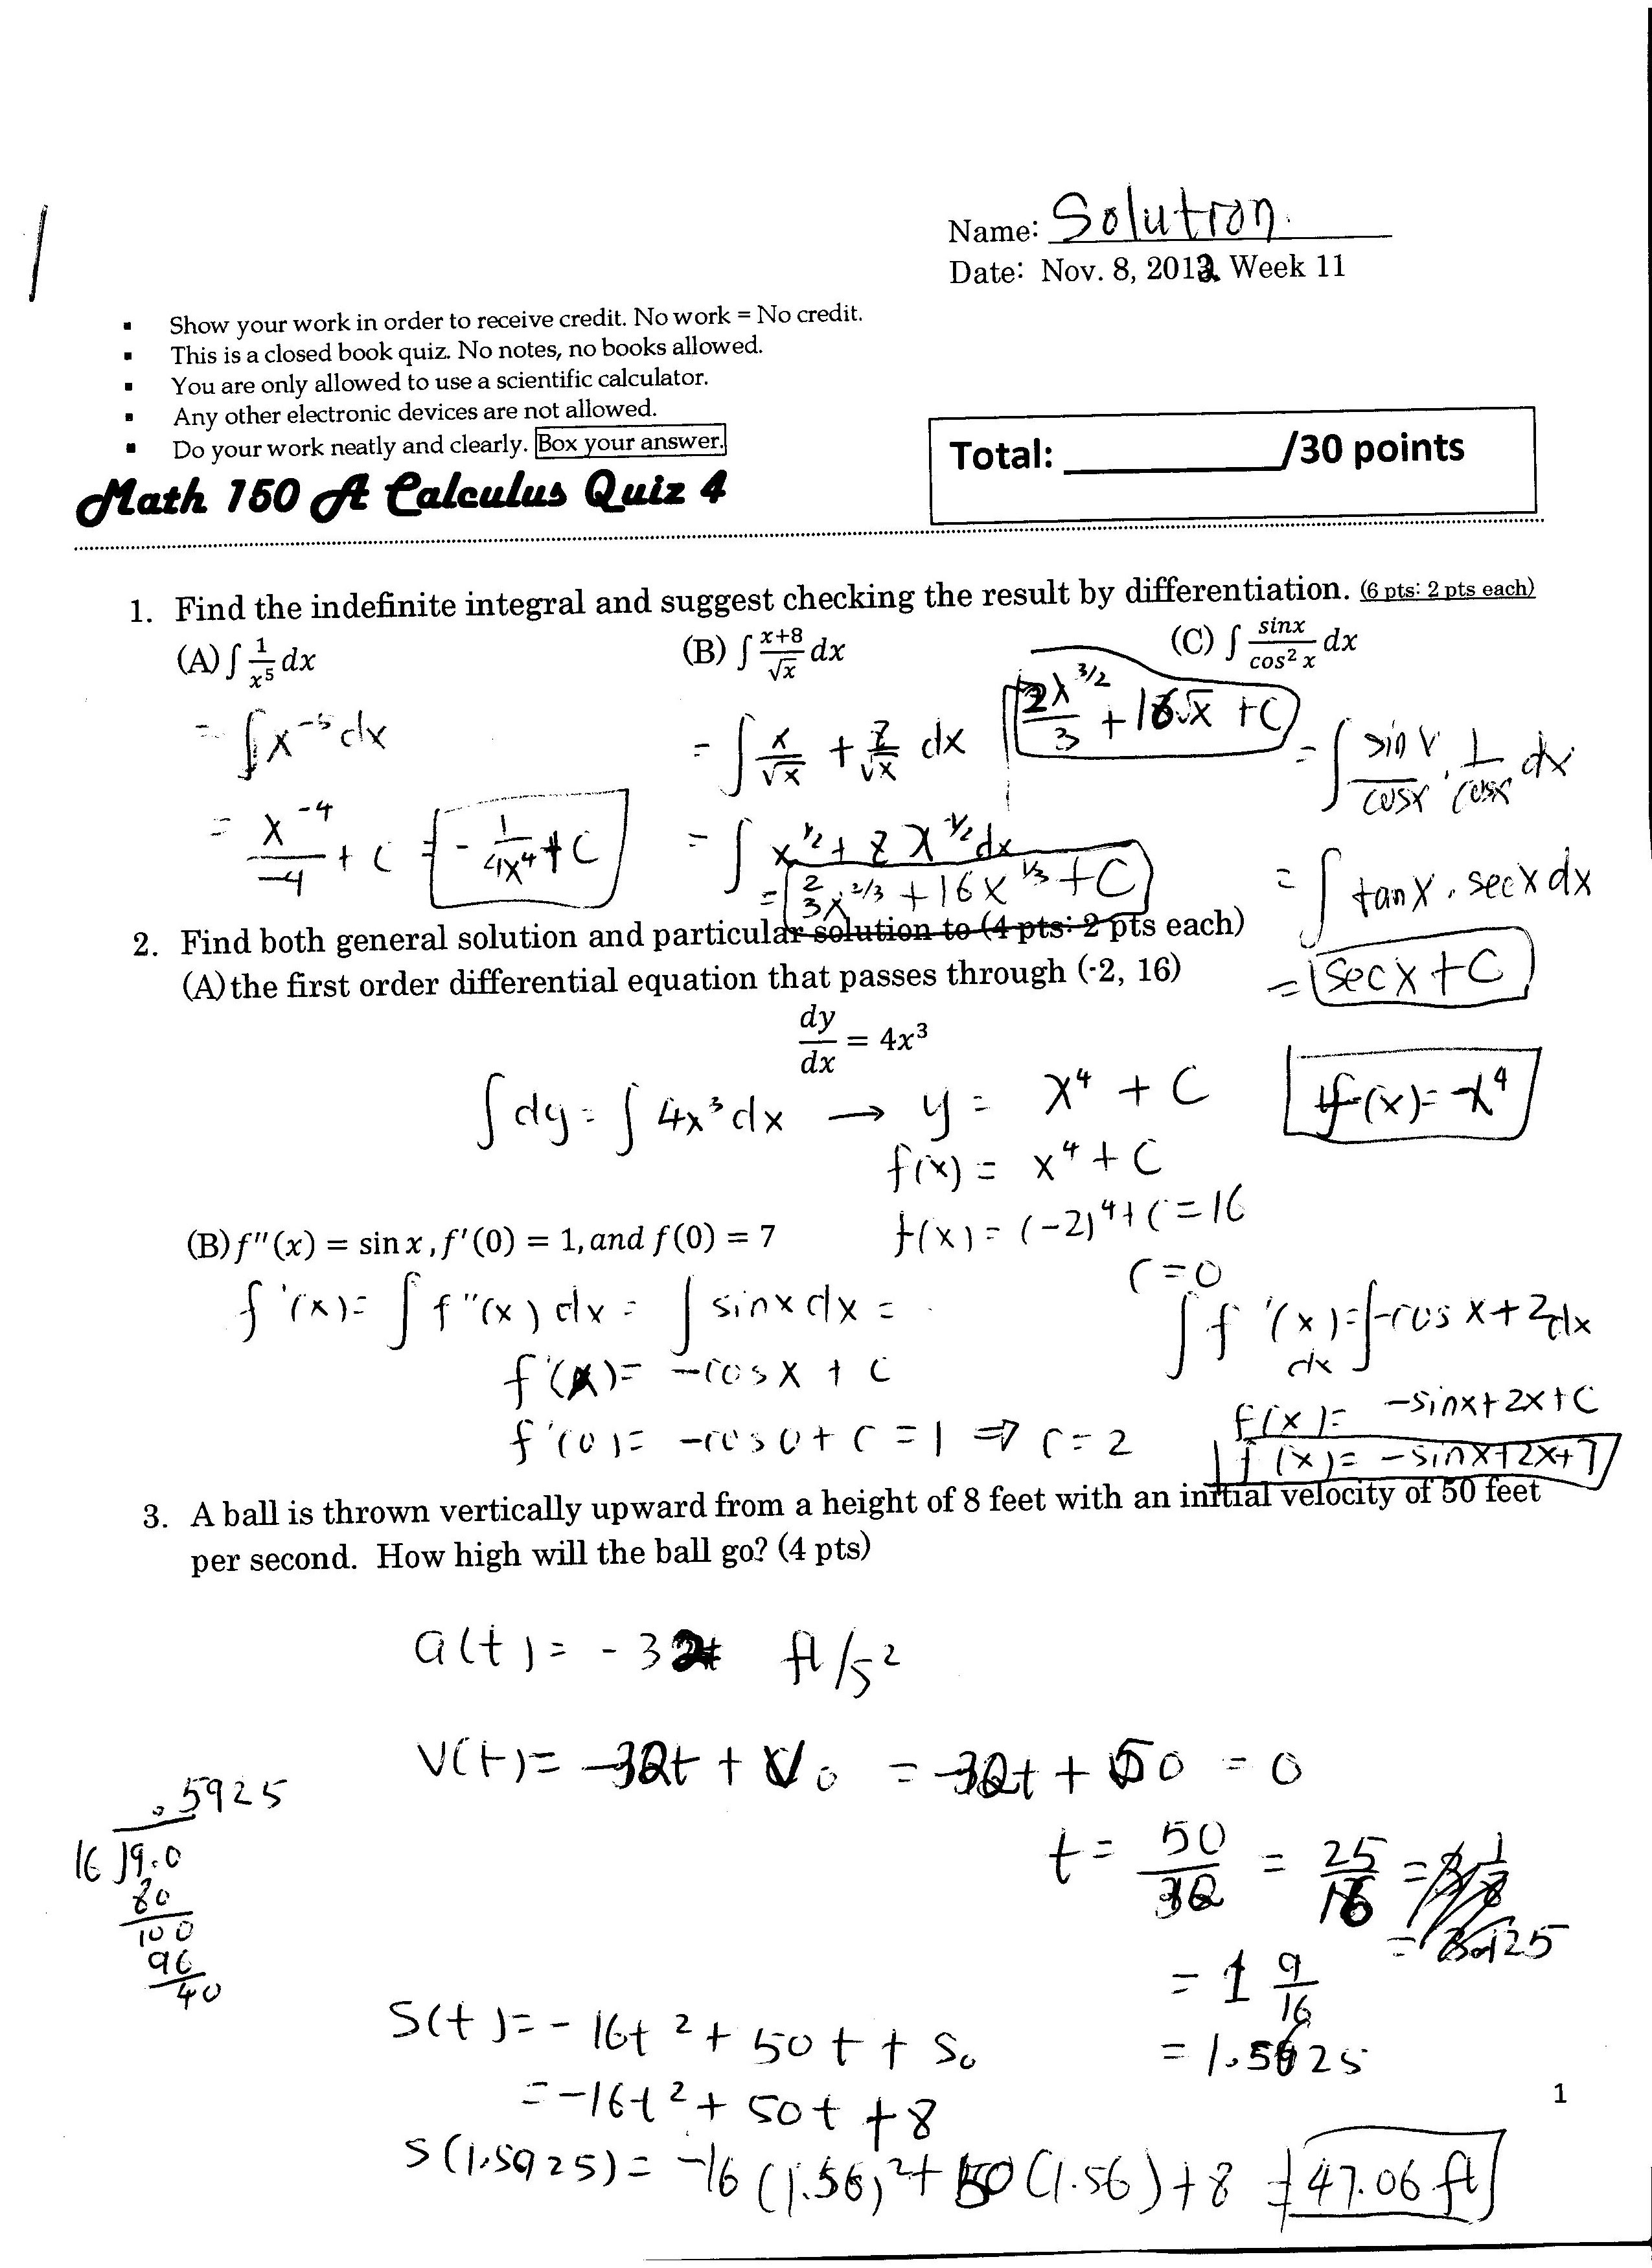 Quizzes Amp Exams Solutions